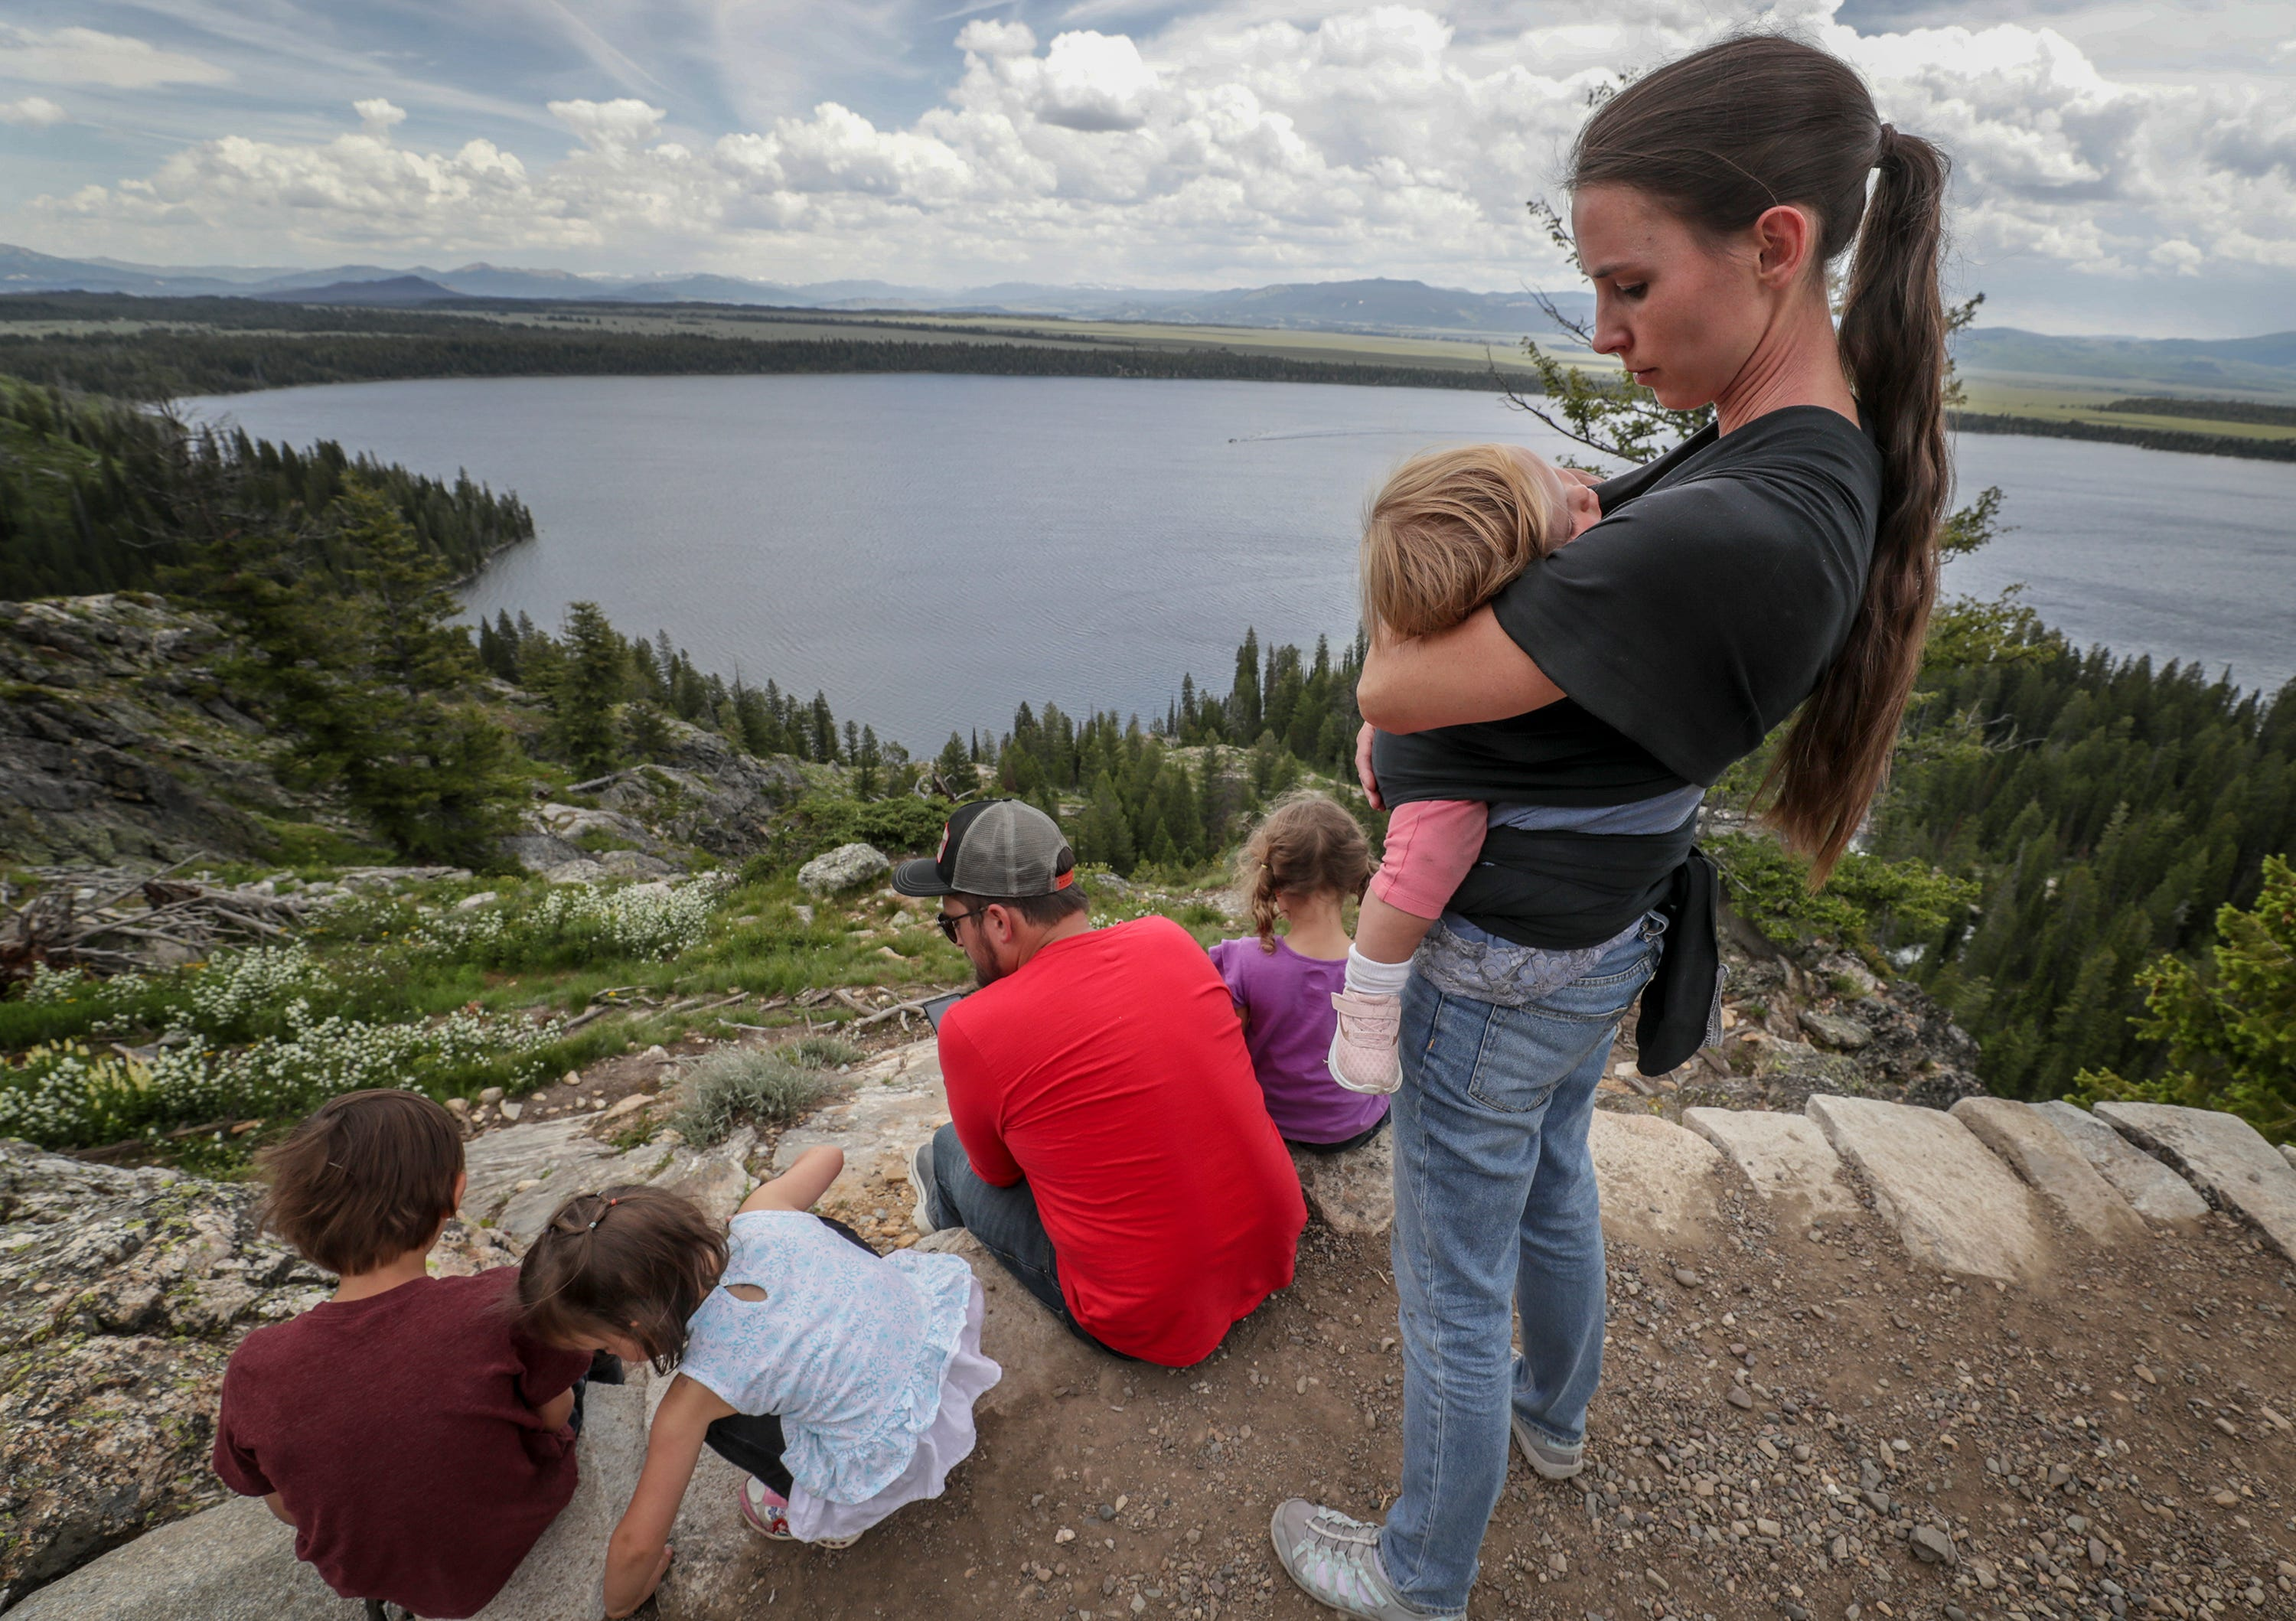 Rachael Denhollander holds her daughter, Elora, as her husband, Jacob, reads the Hobbit to their children at Inspiration Point in Tetons National Park in Wyoming.  Rachael and her family also visited the Tetons when she was a teenager and her father read the Hobbit to them as well.